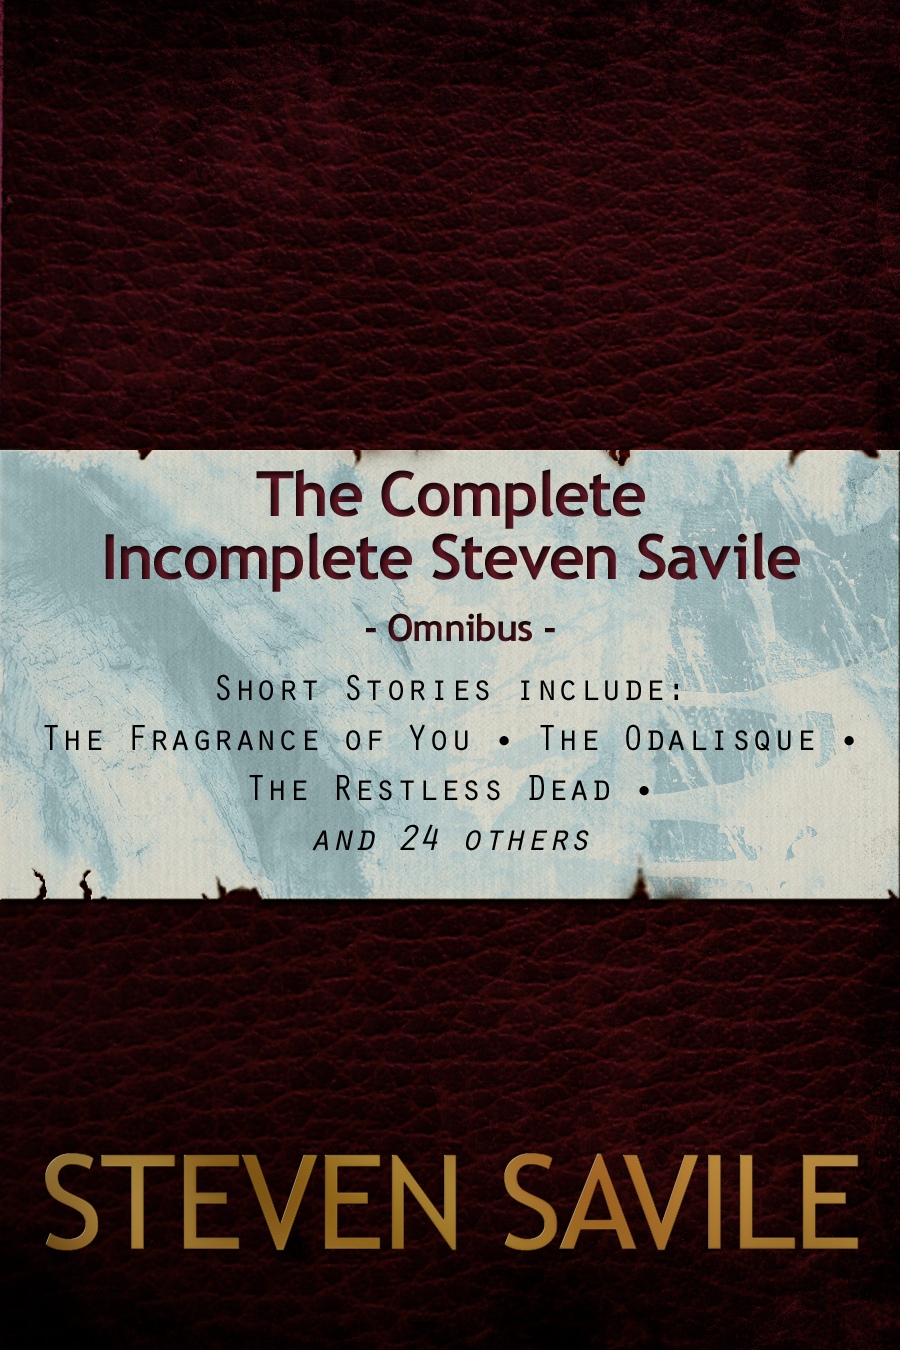 The Complete Incomplete Steven Savile